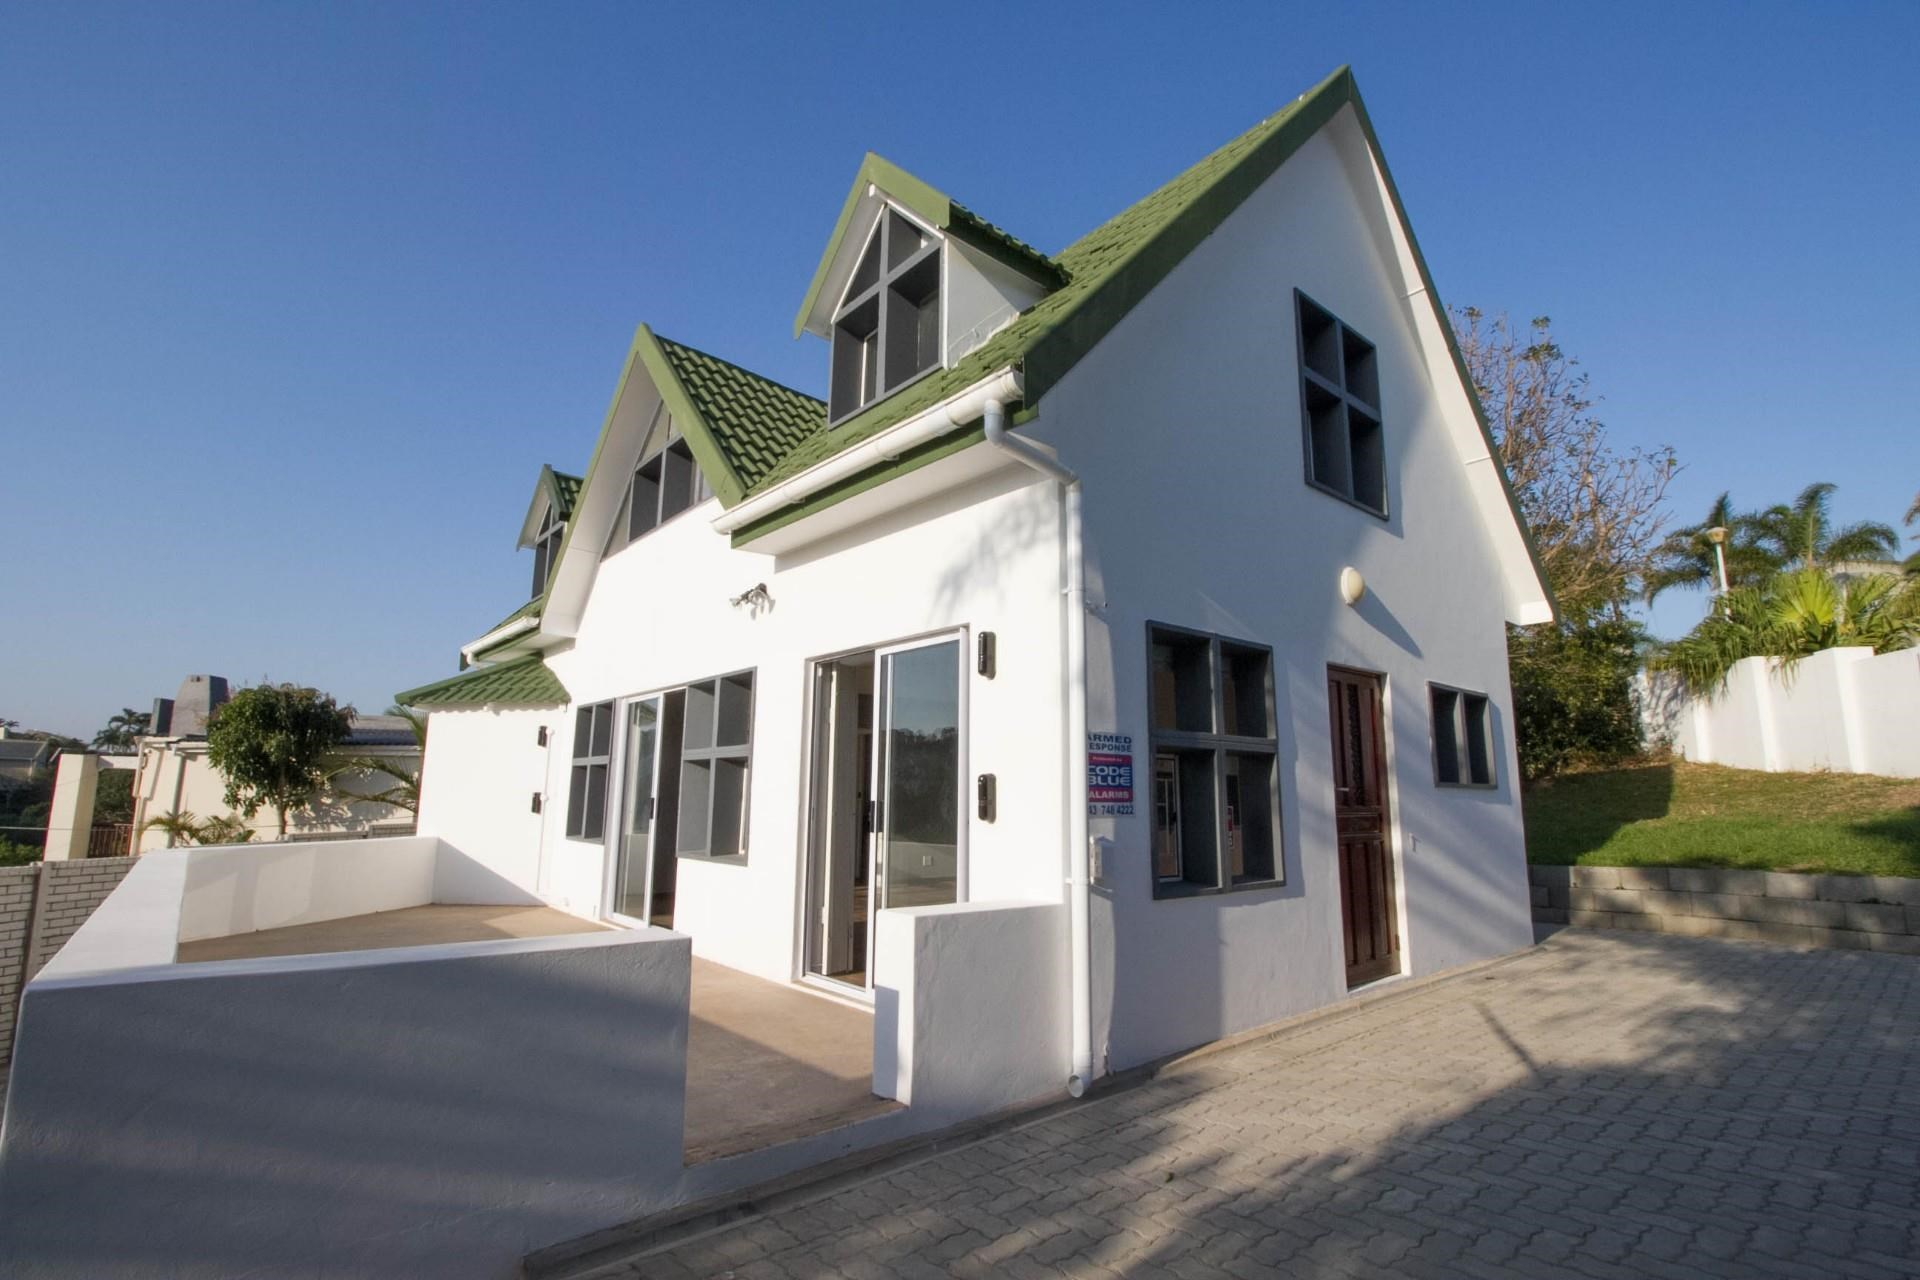 3 Bedroom House to Rent in Beacon Bay